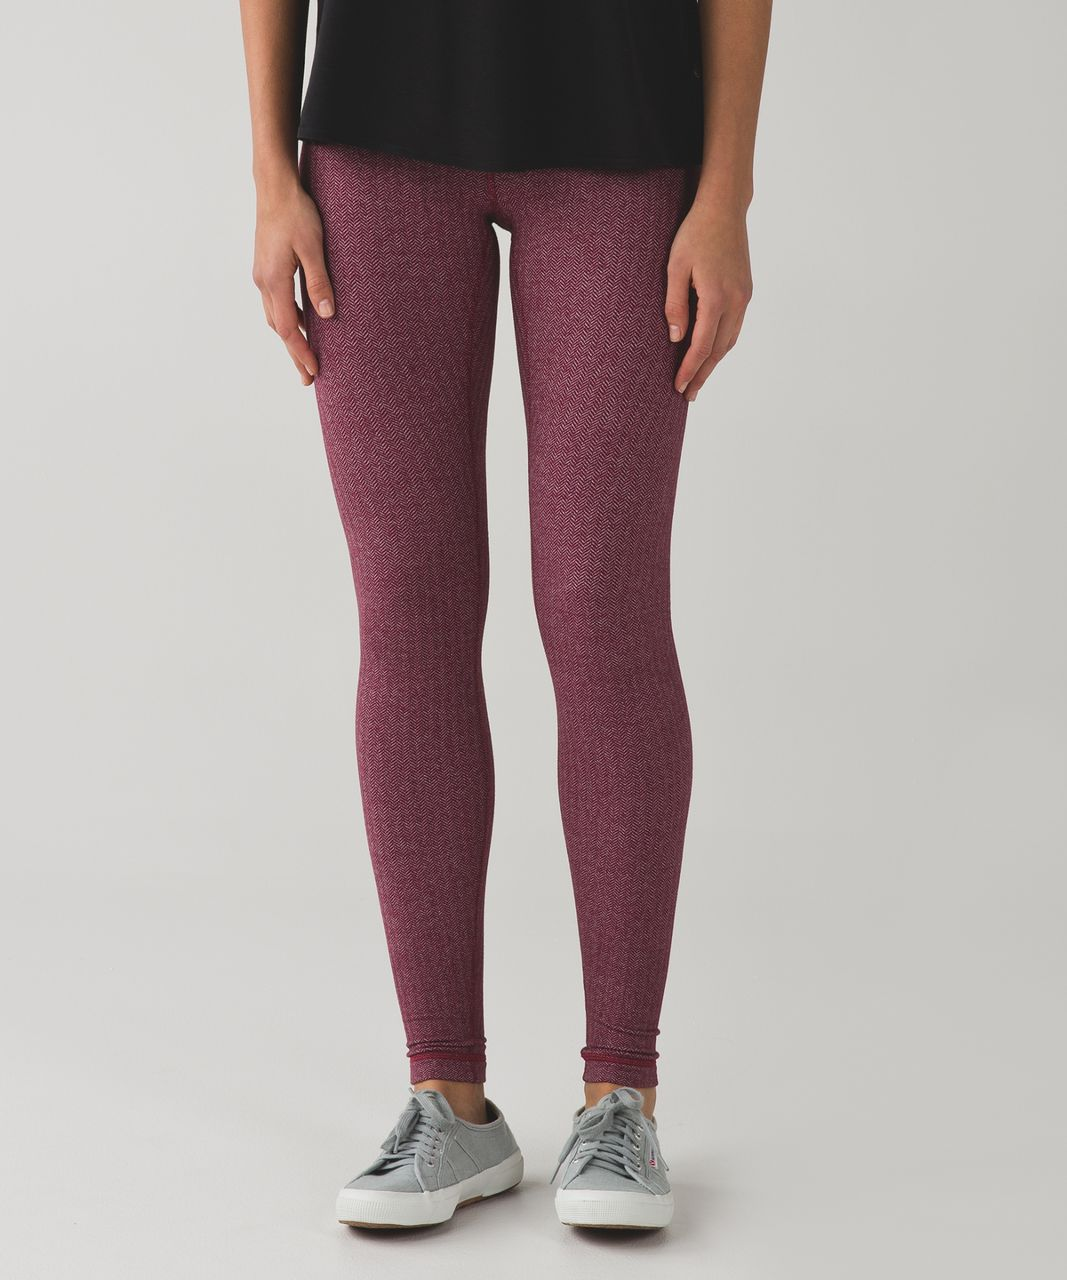 "Lululemon Wunder Under Pant (Hi-Rise) *31"" - Heathered Herringbone Heathered Berry Rumble Bordeaux Drama"